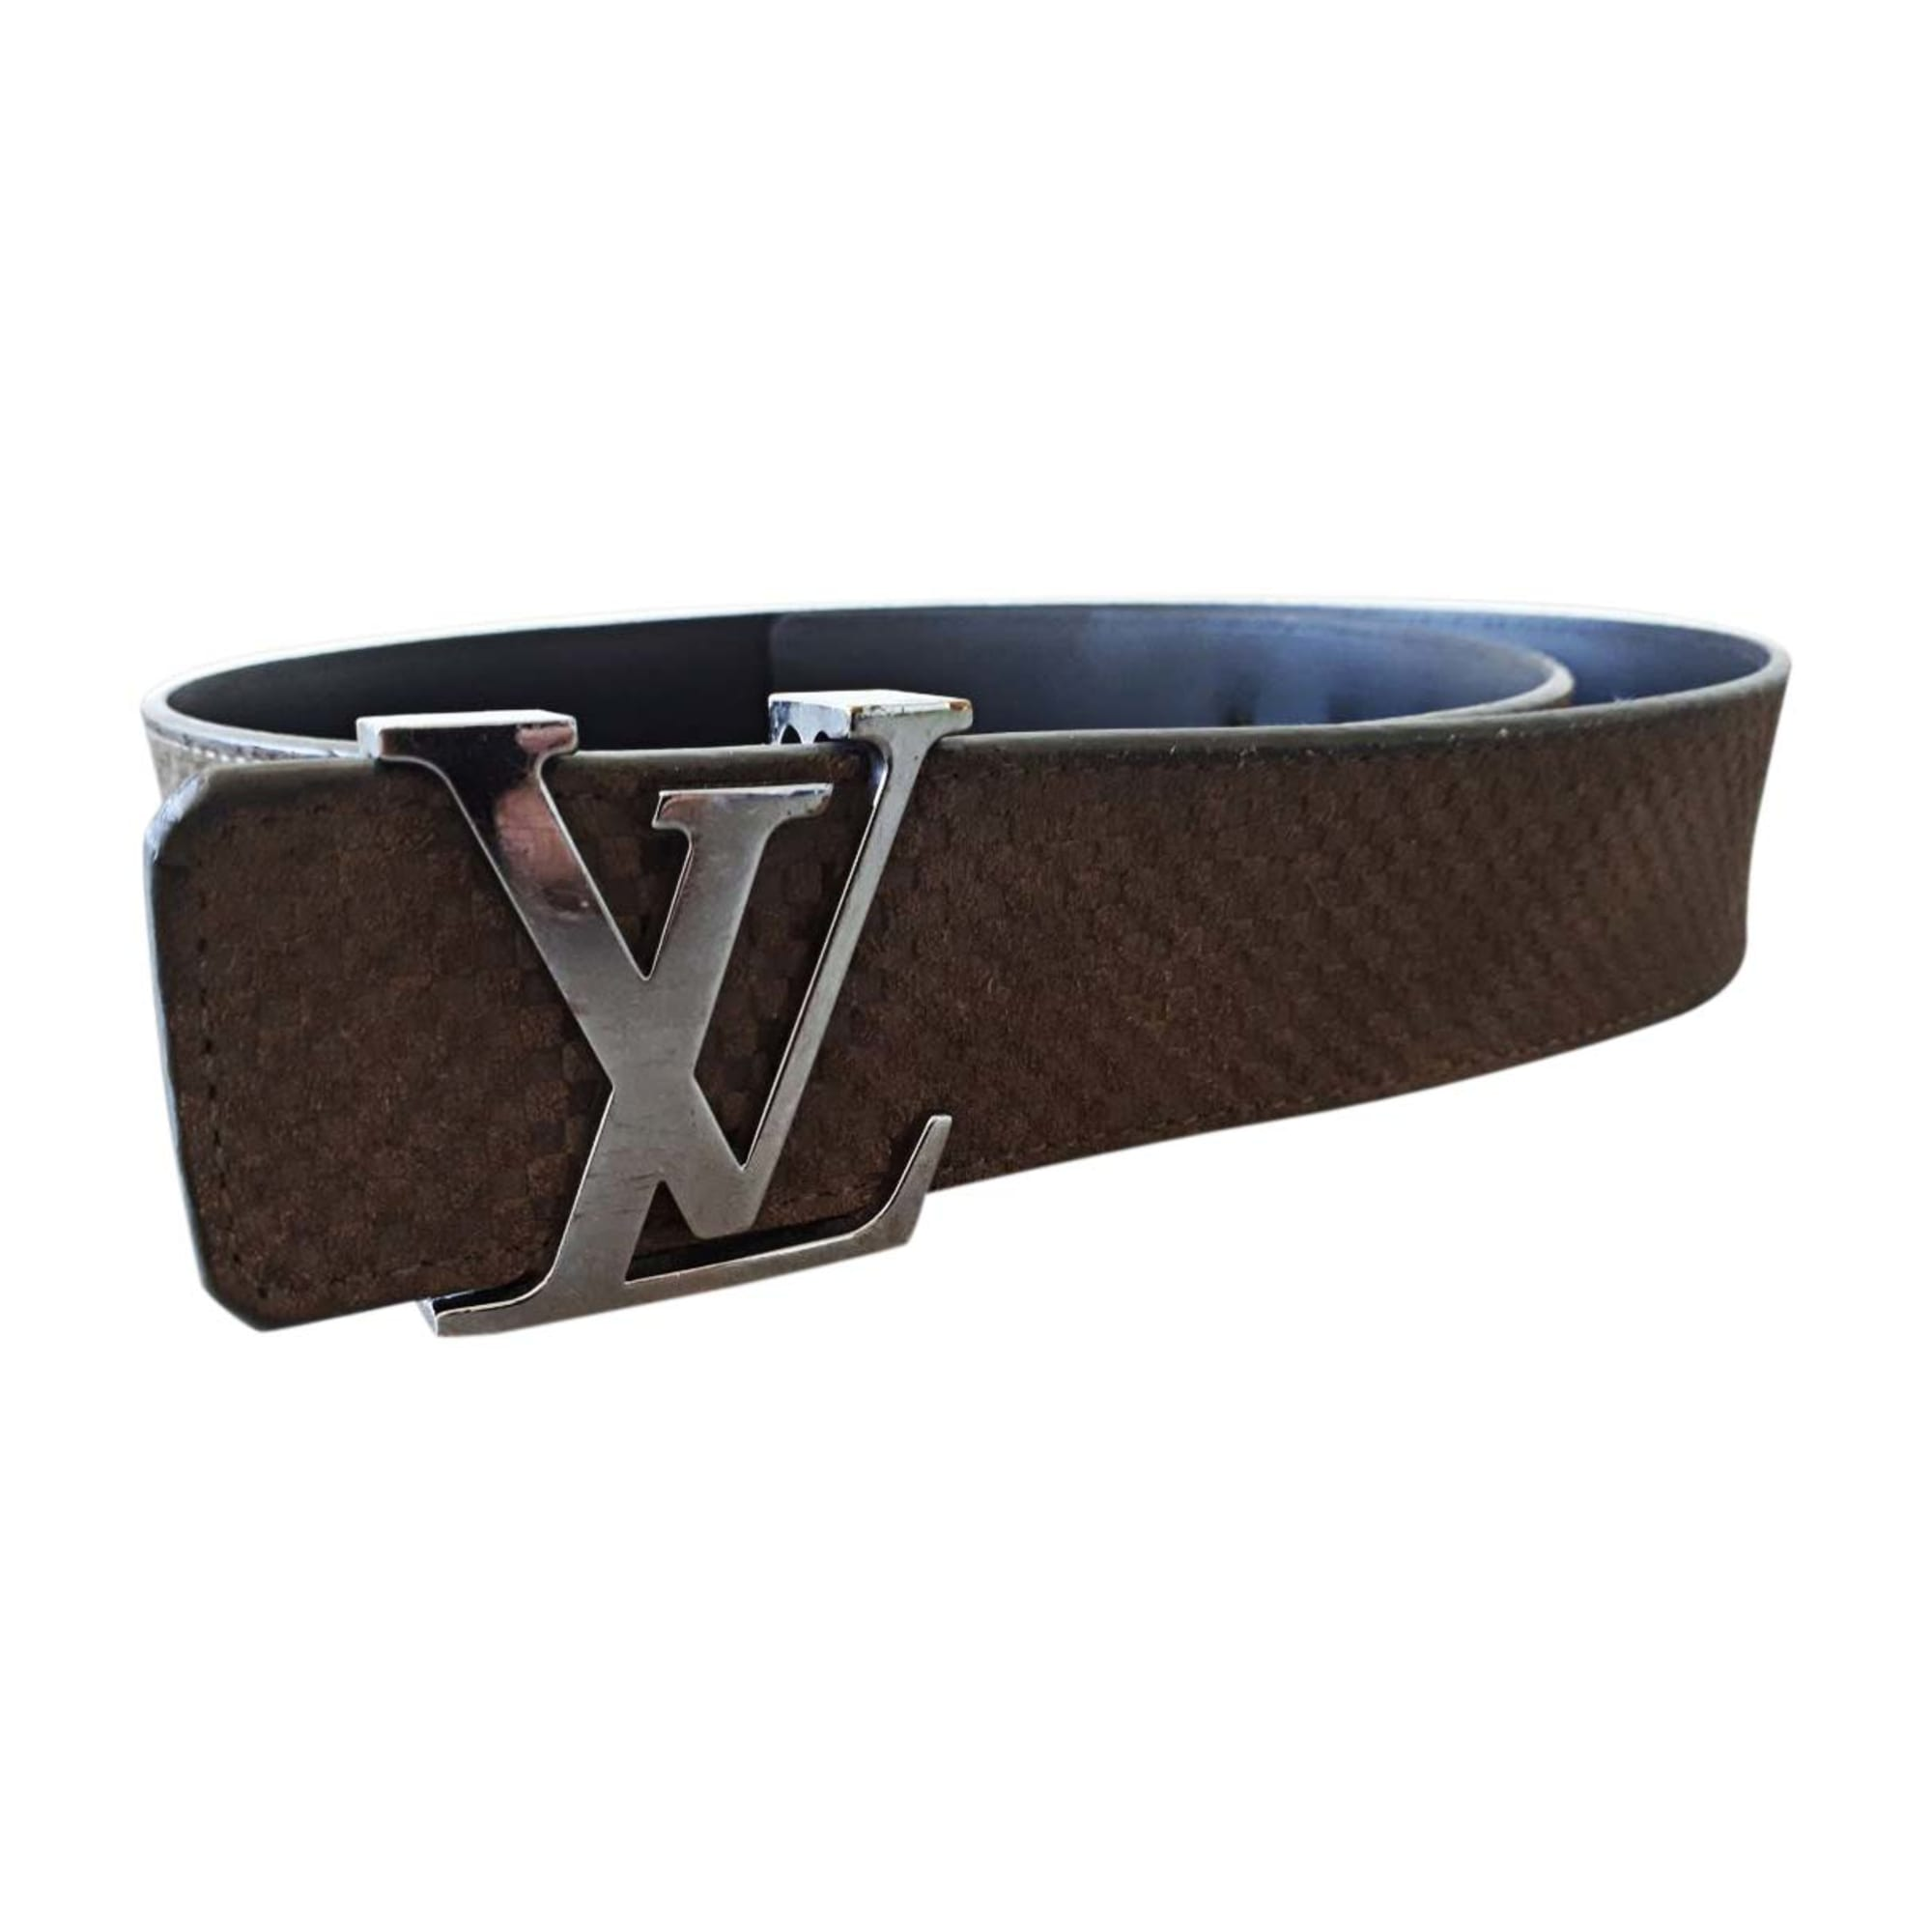 4b0beb452ebe Ceinture LOUIS VUITTON 90 marron vendu par Rock.glam.love - 8076975